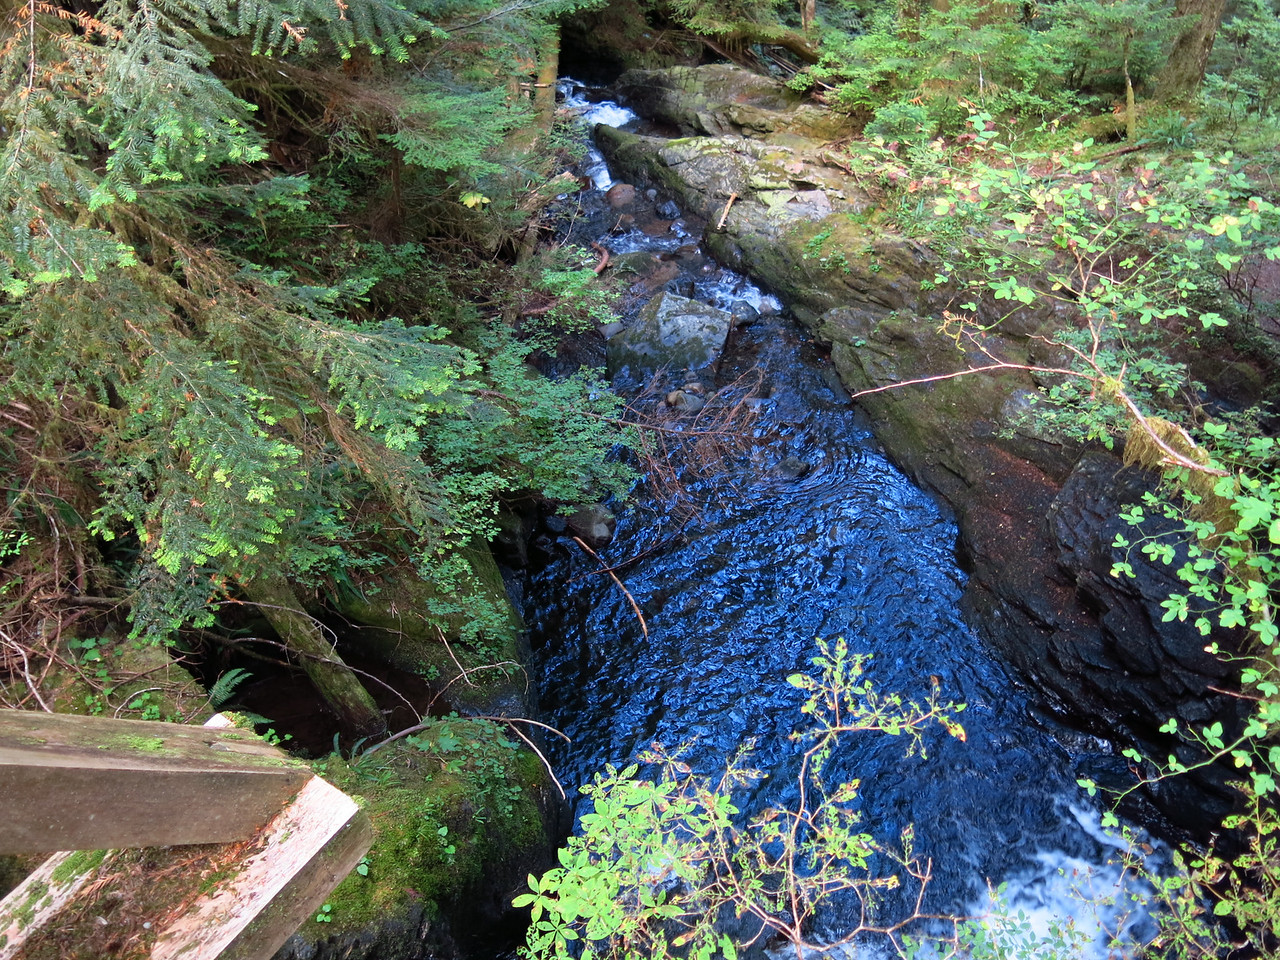 A downstream view from the bridge.